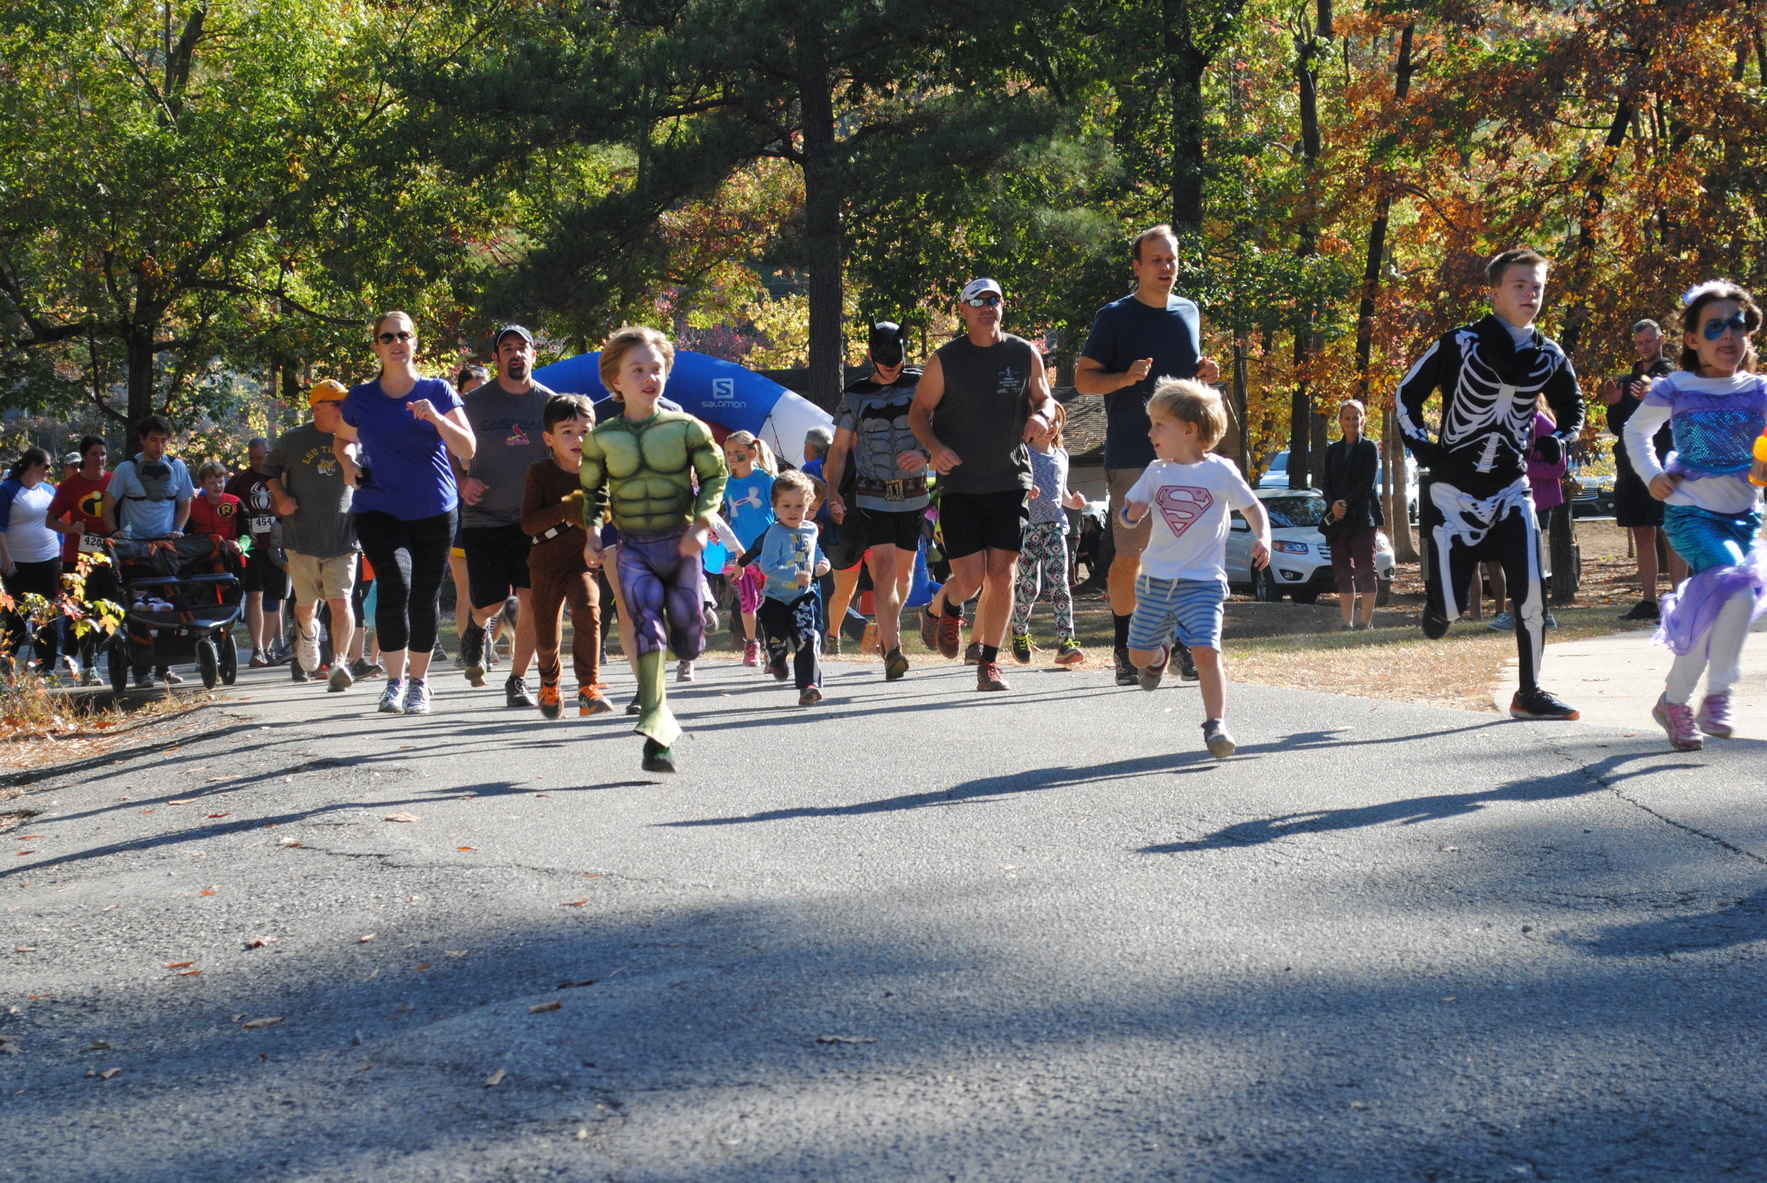 Boo Run for Down Syndrome 10K - 5K - Fun Run Today - Walk Up Registration Only at Red Mountain Park  image